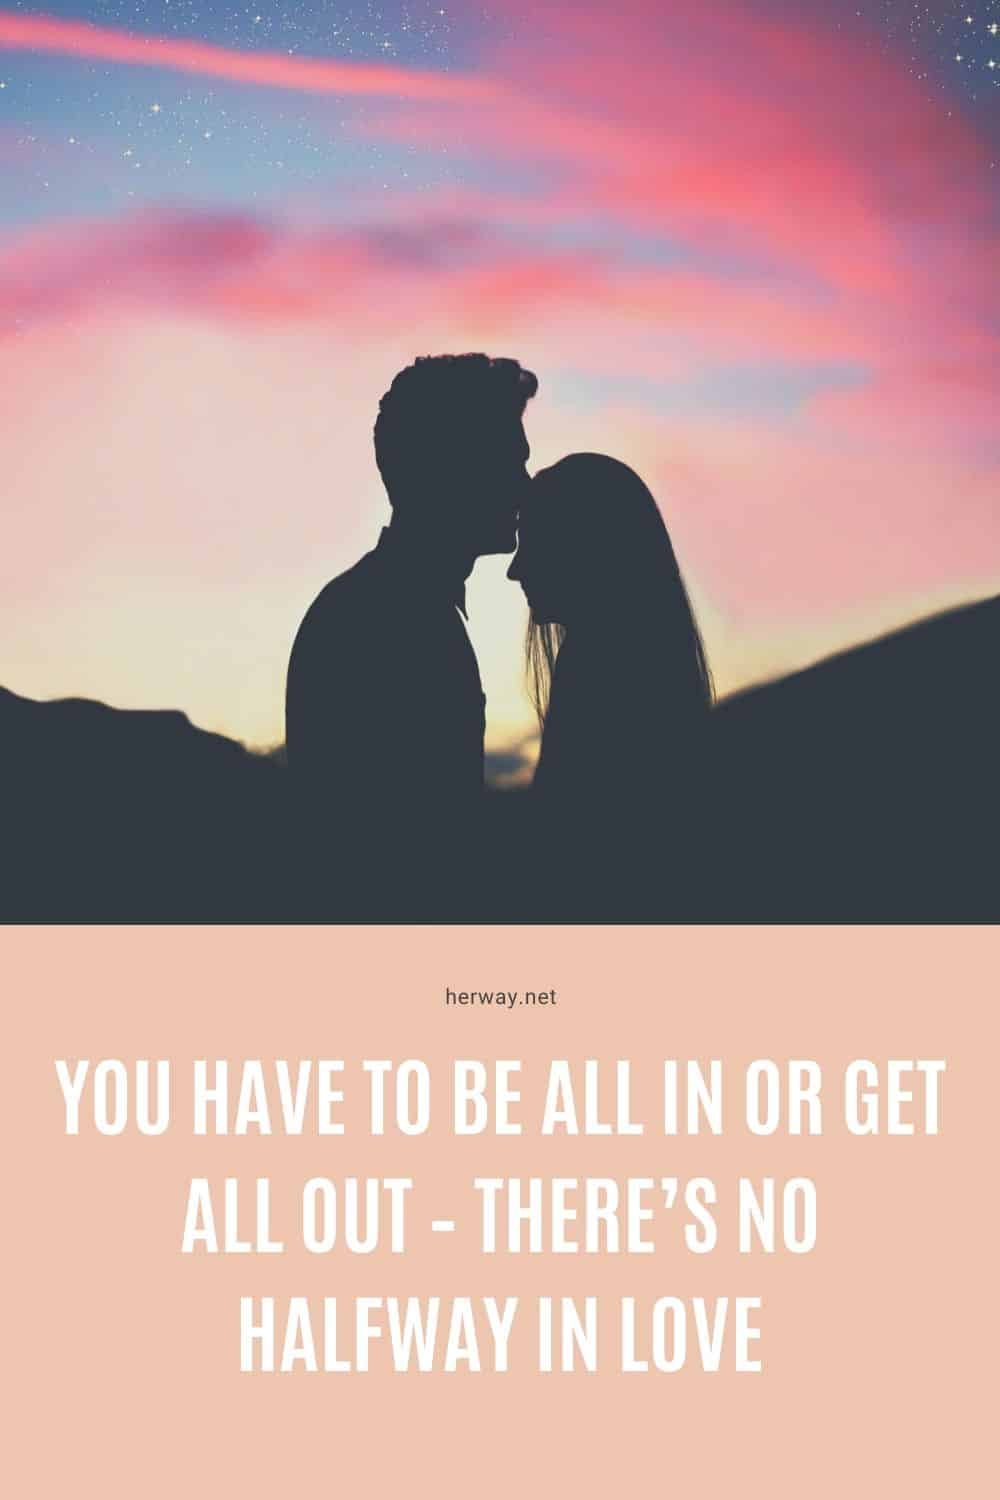 You Have To Be All In Or Get All Out – There's No Halfway In Love